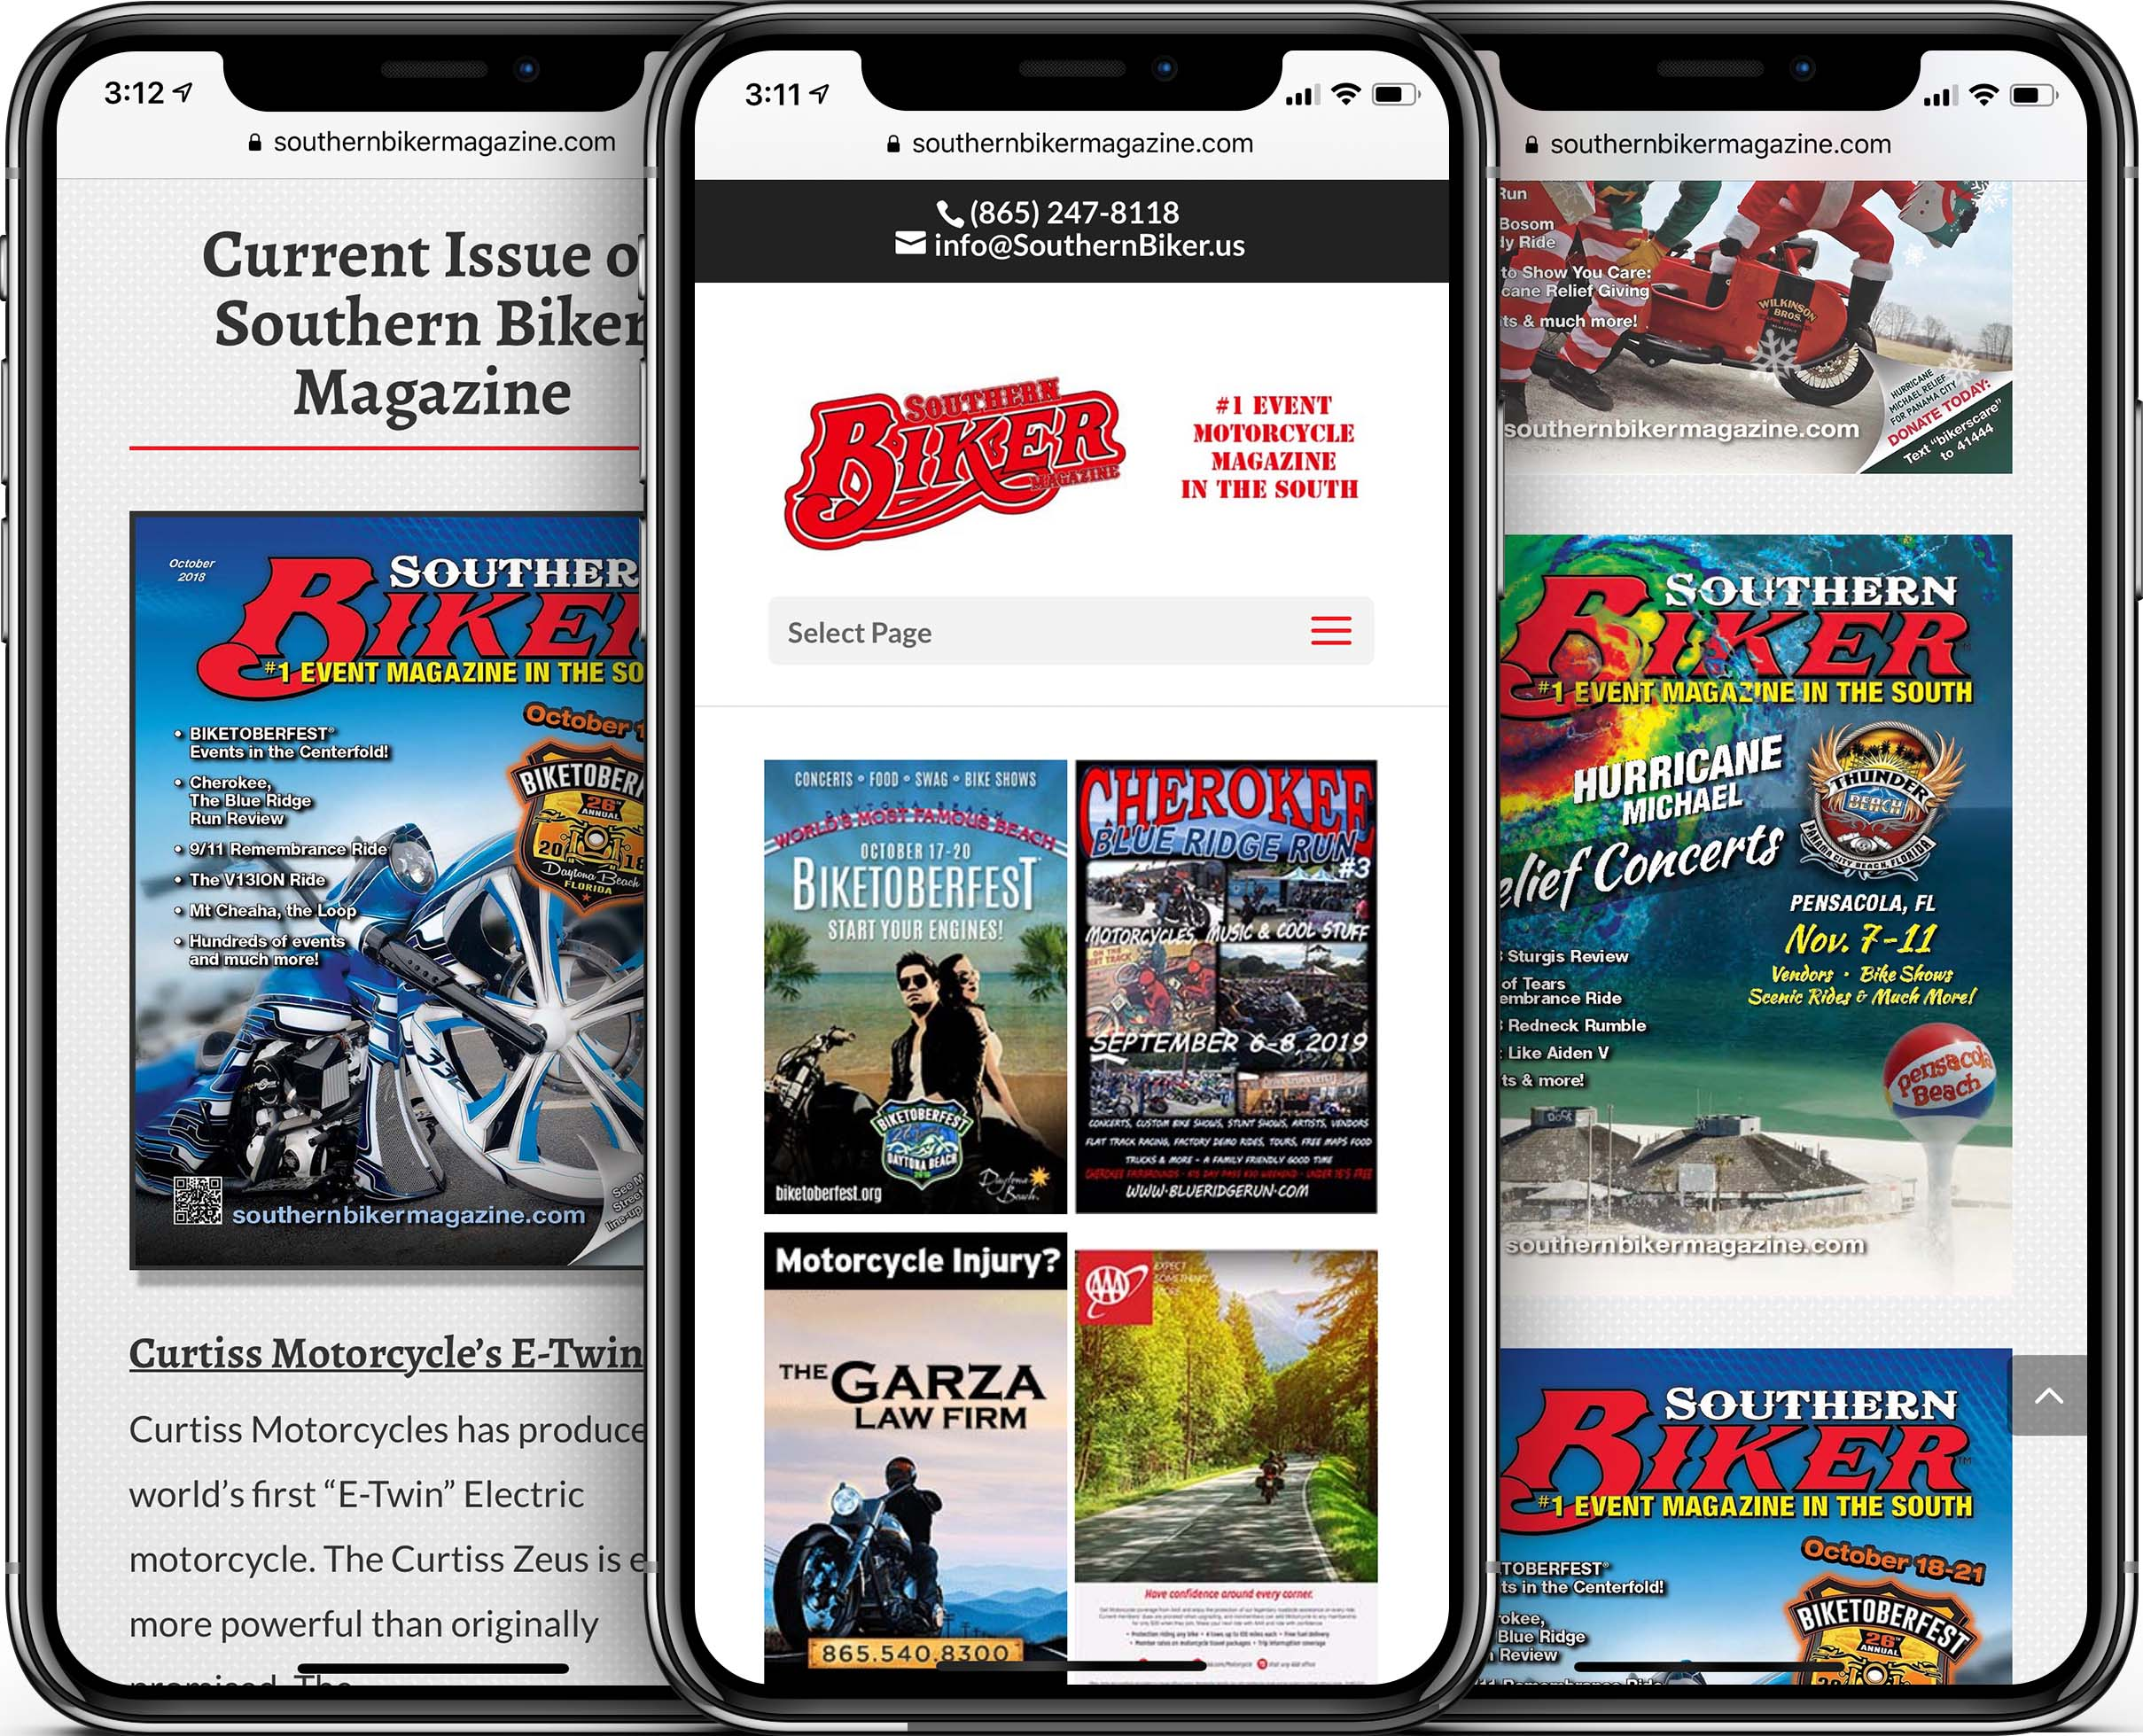 Southern Biker Magazine Mobile-Friendly Web Design